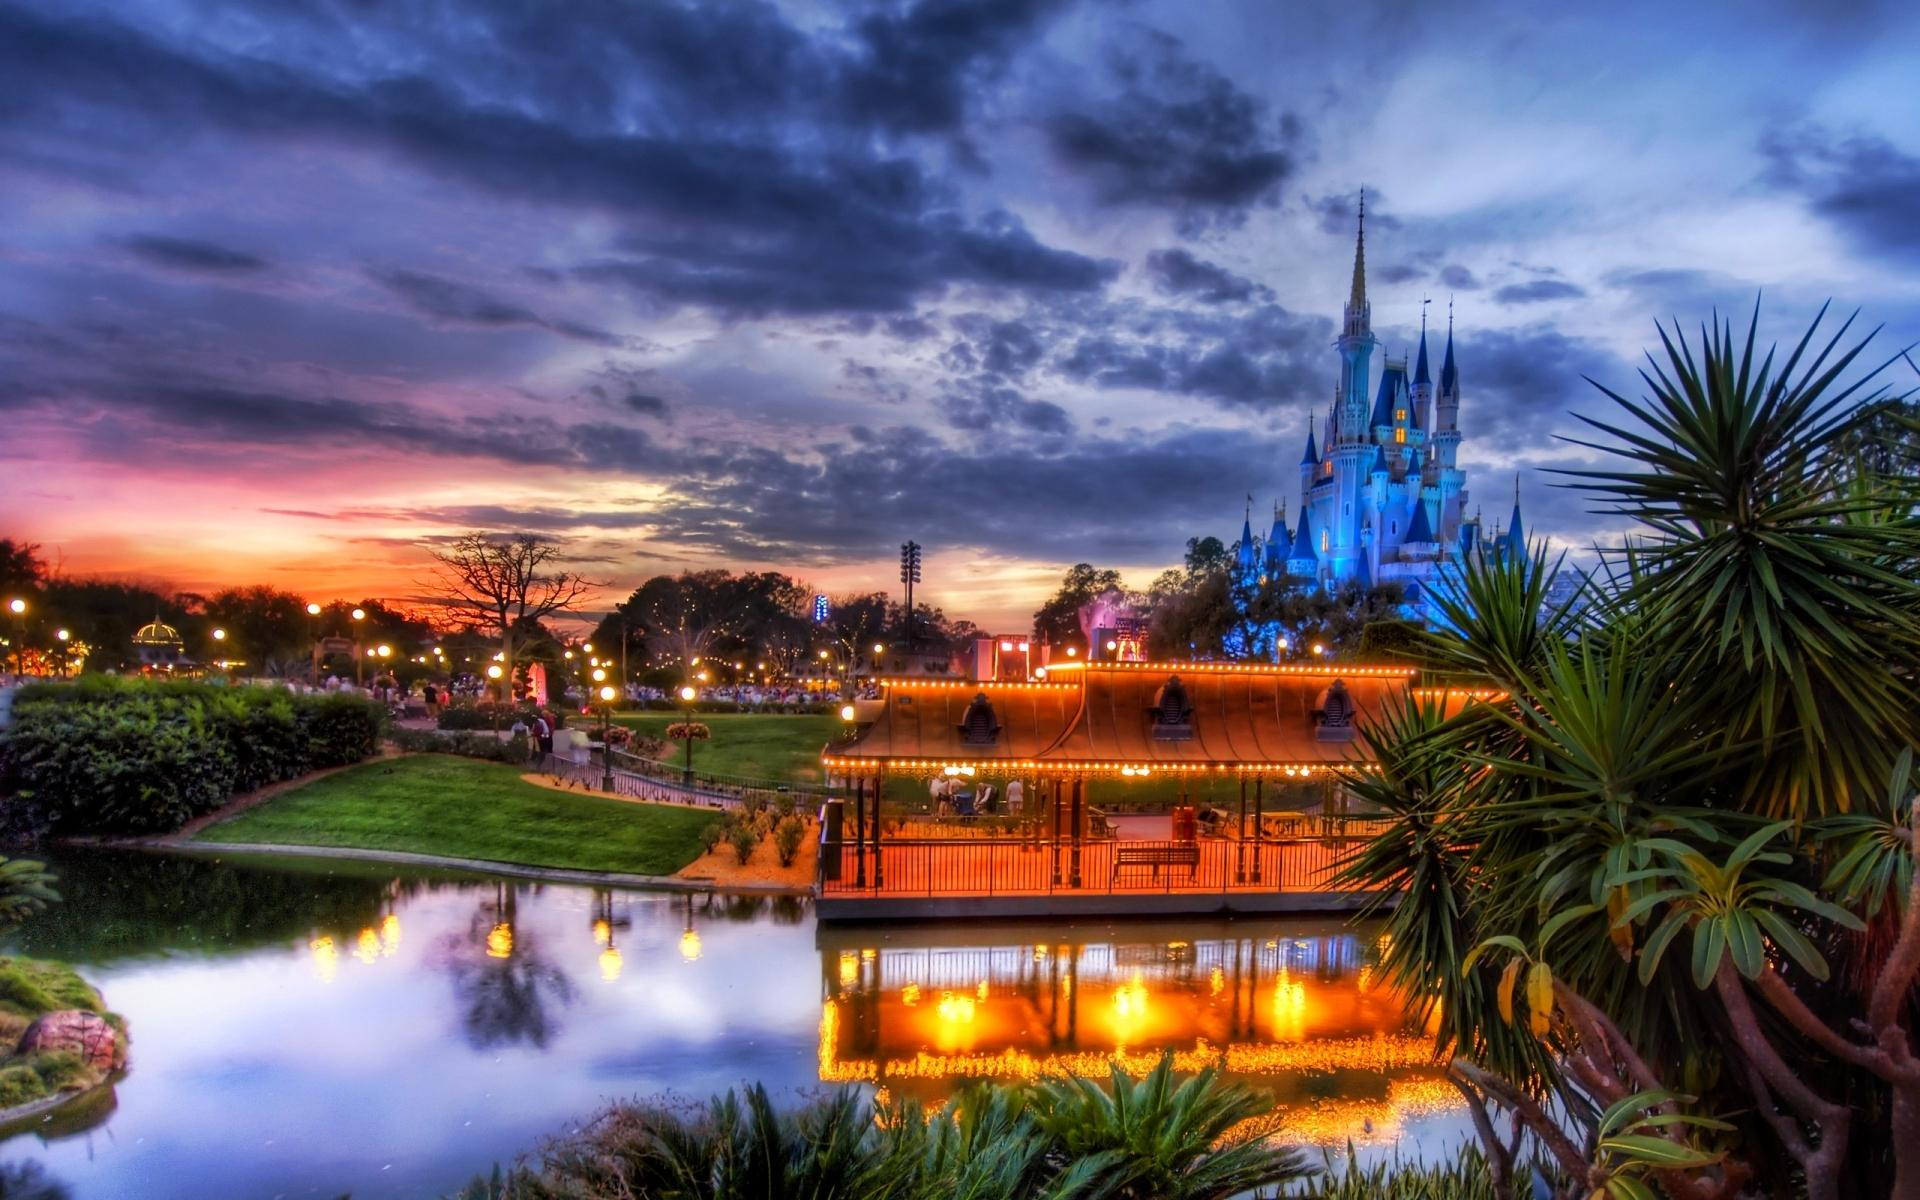 HDR Photography wallpapers HD quality